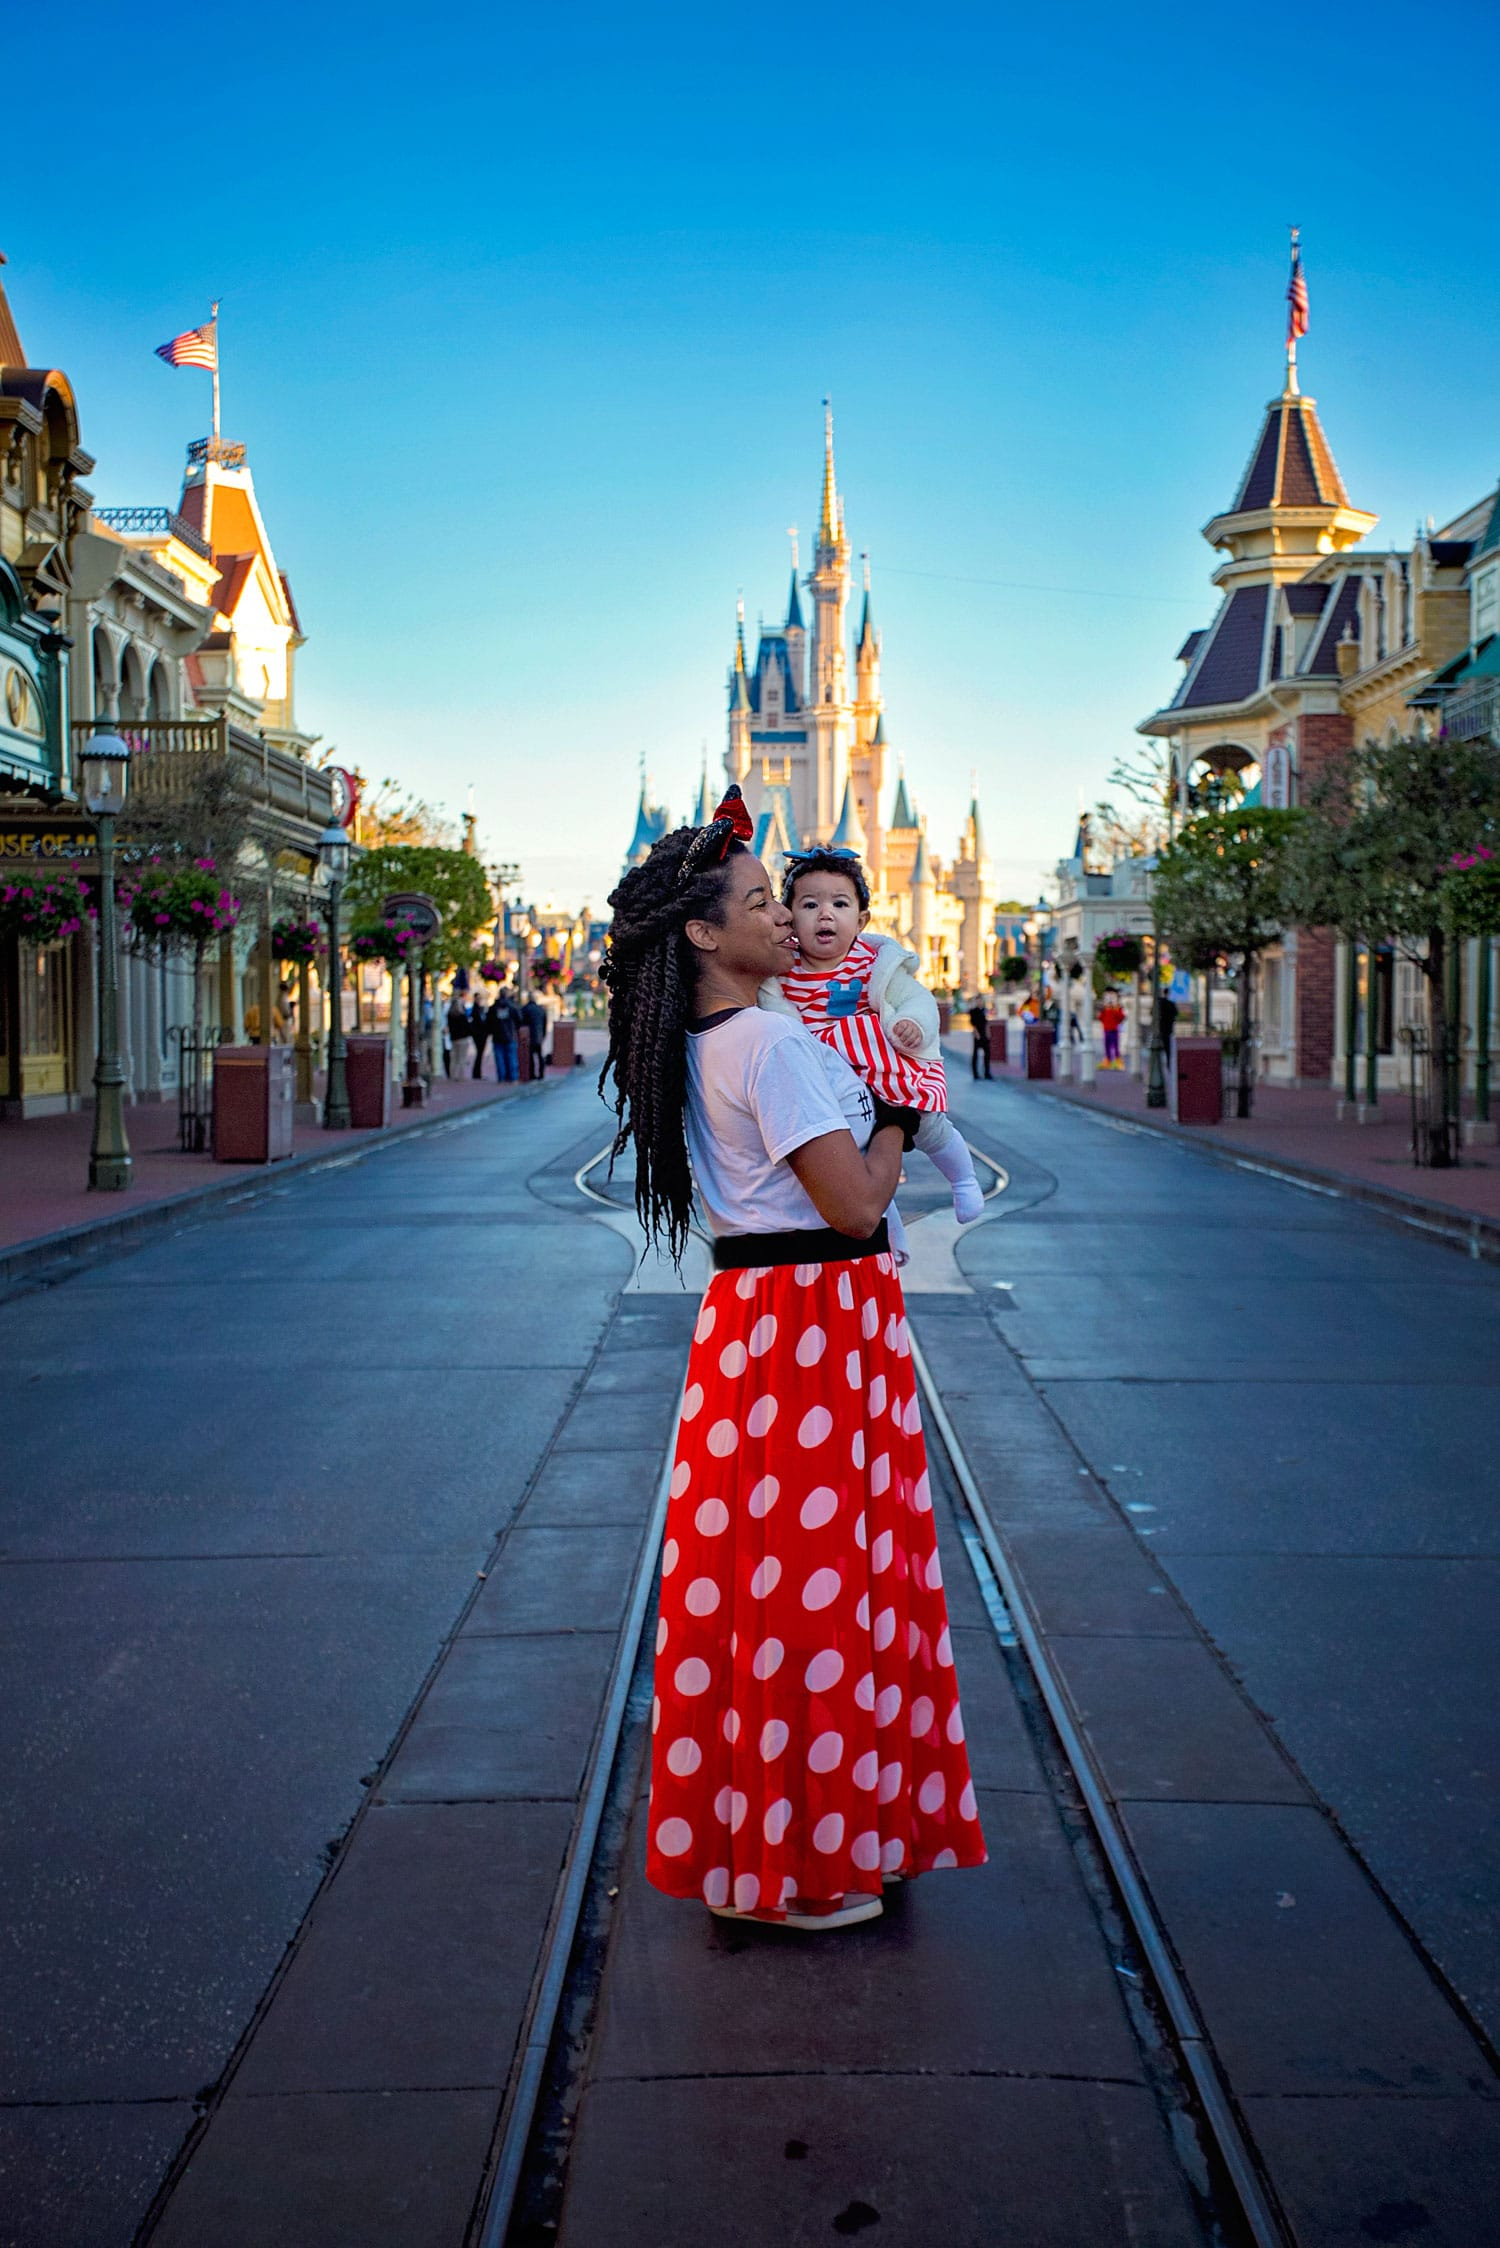 b24b196c I've met many parents who think they should wait until their kids are older  to make a trip to Walt Disney World. But I'm here to tell you, the magic is  very ...